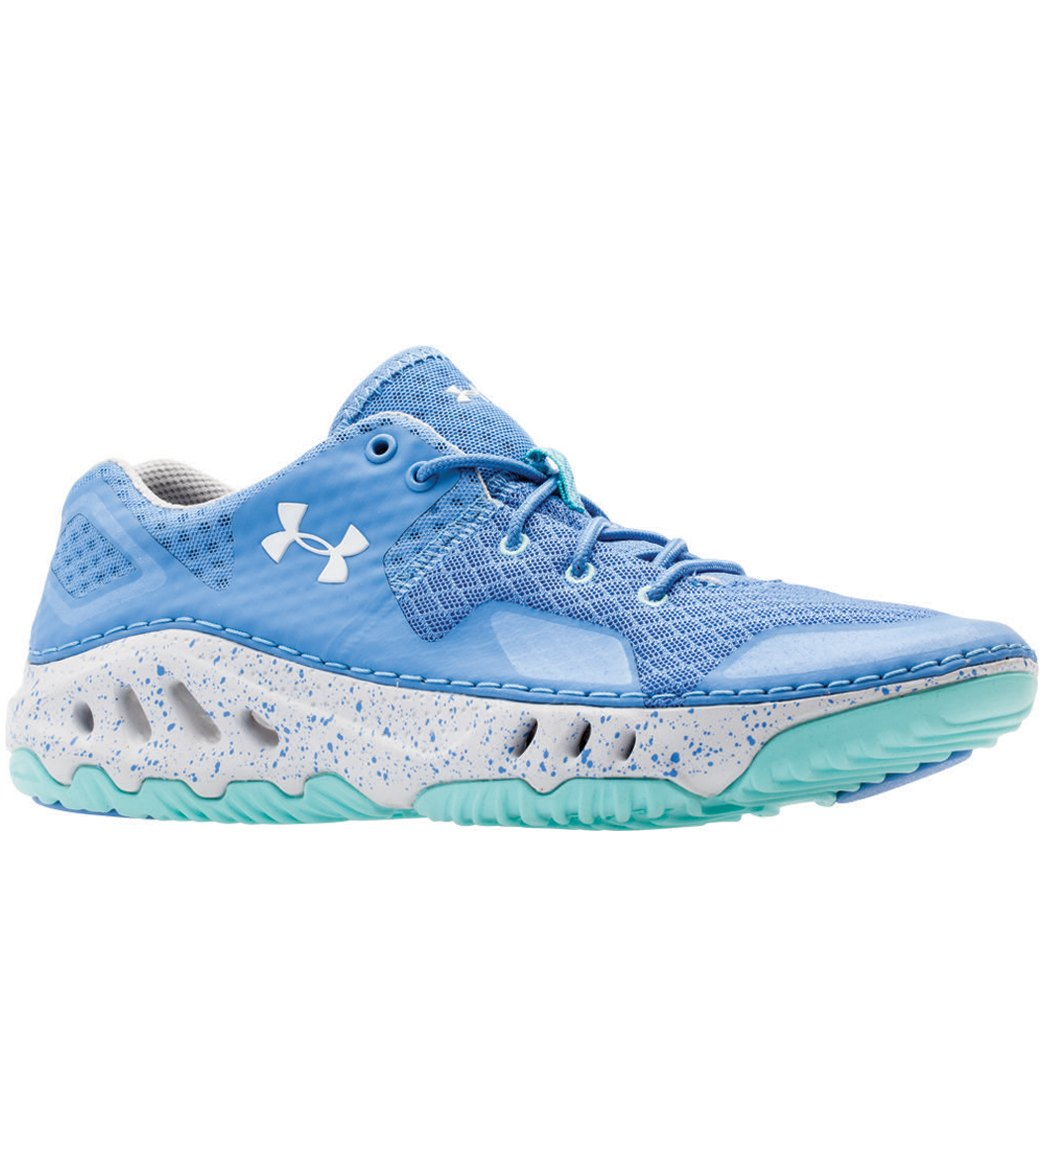 120bb1bb7c9 Cheap under armour water shoes womens Buy Online  OFF54% Discounted